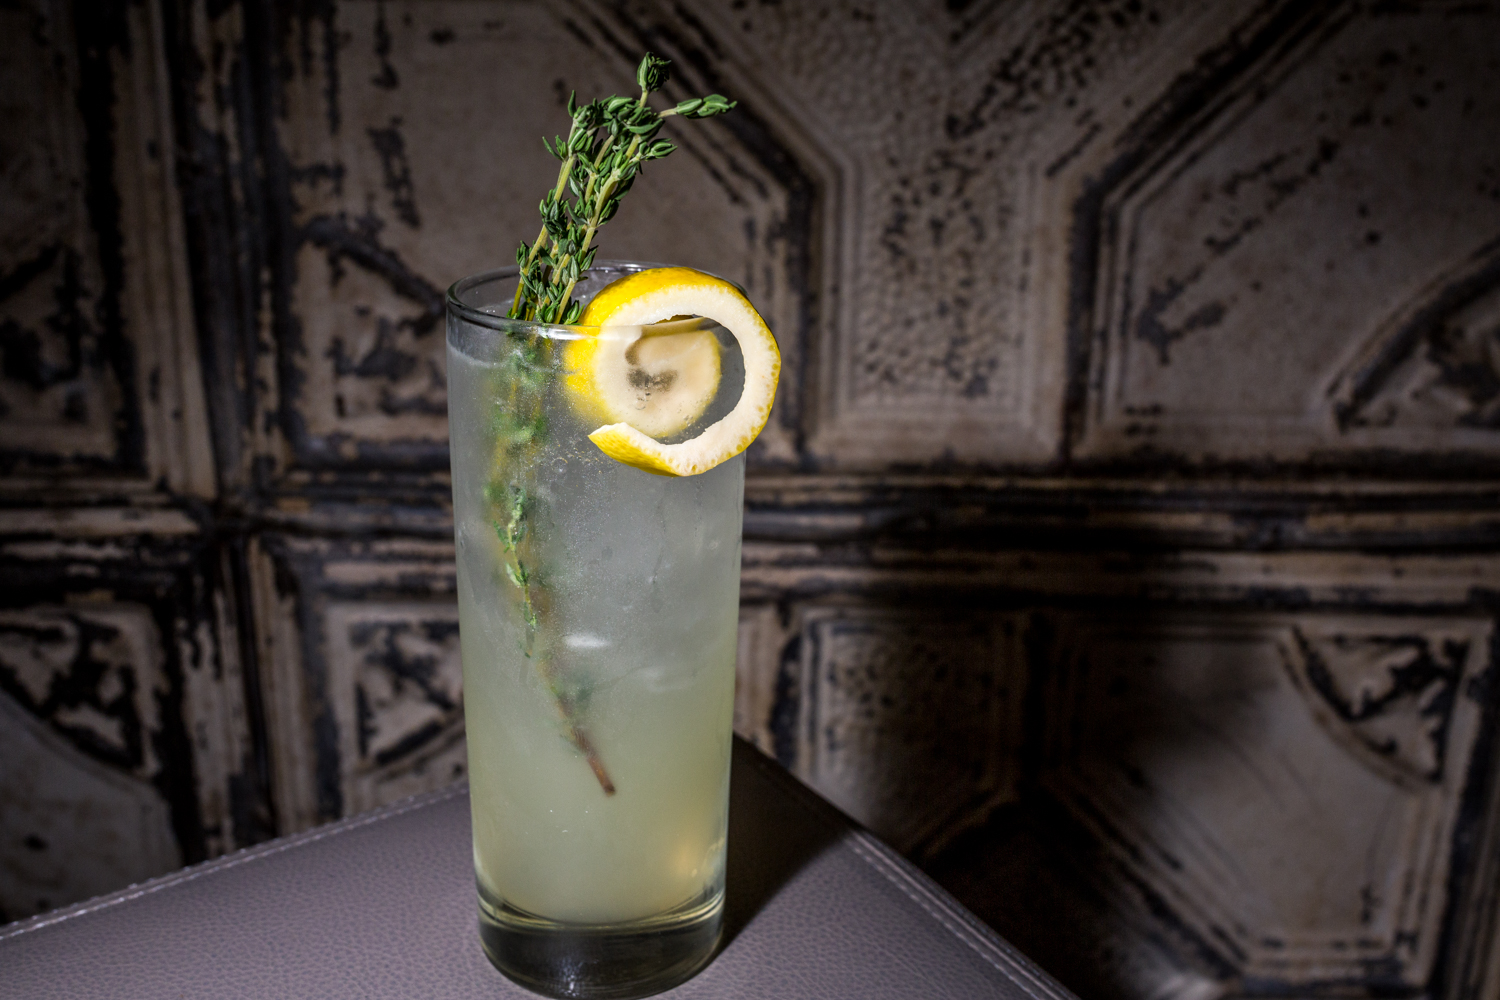 Lemon-Thyme Fizz: Bluecoat Gin, lemon-thyme syrup, and soda / Image: Catherine Viox{ }// Published: 9.30.19